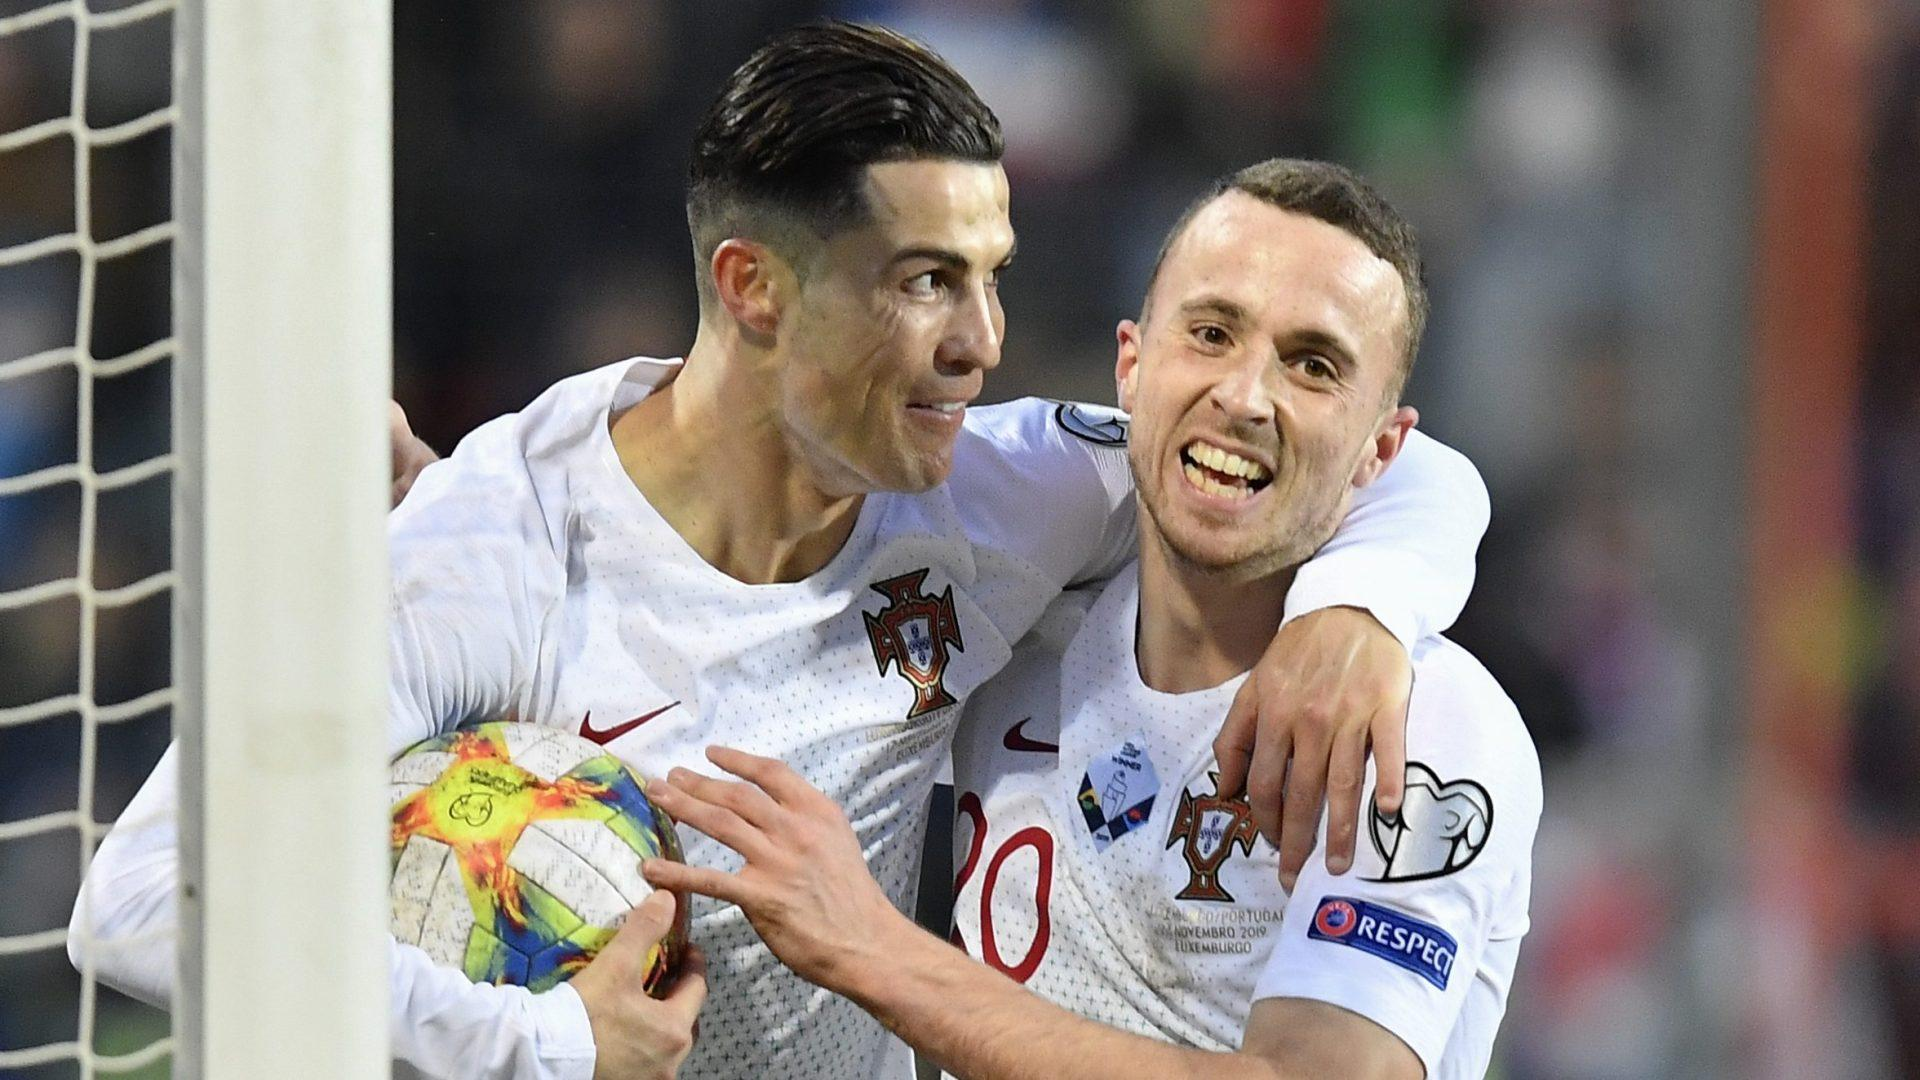 Defending champs Portugal qualify for EURO 2020